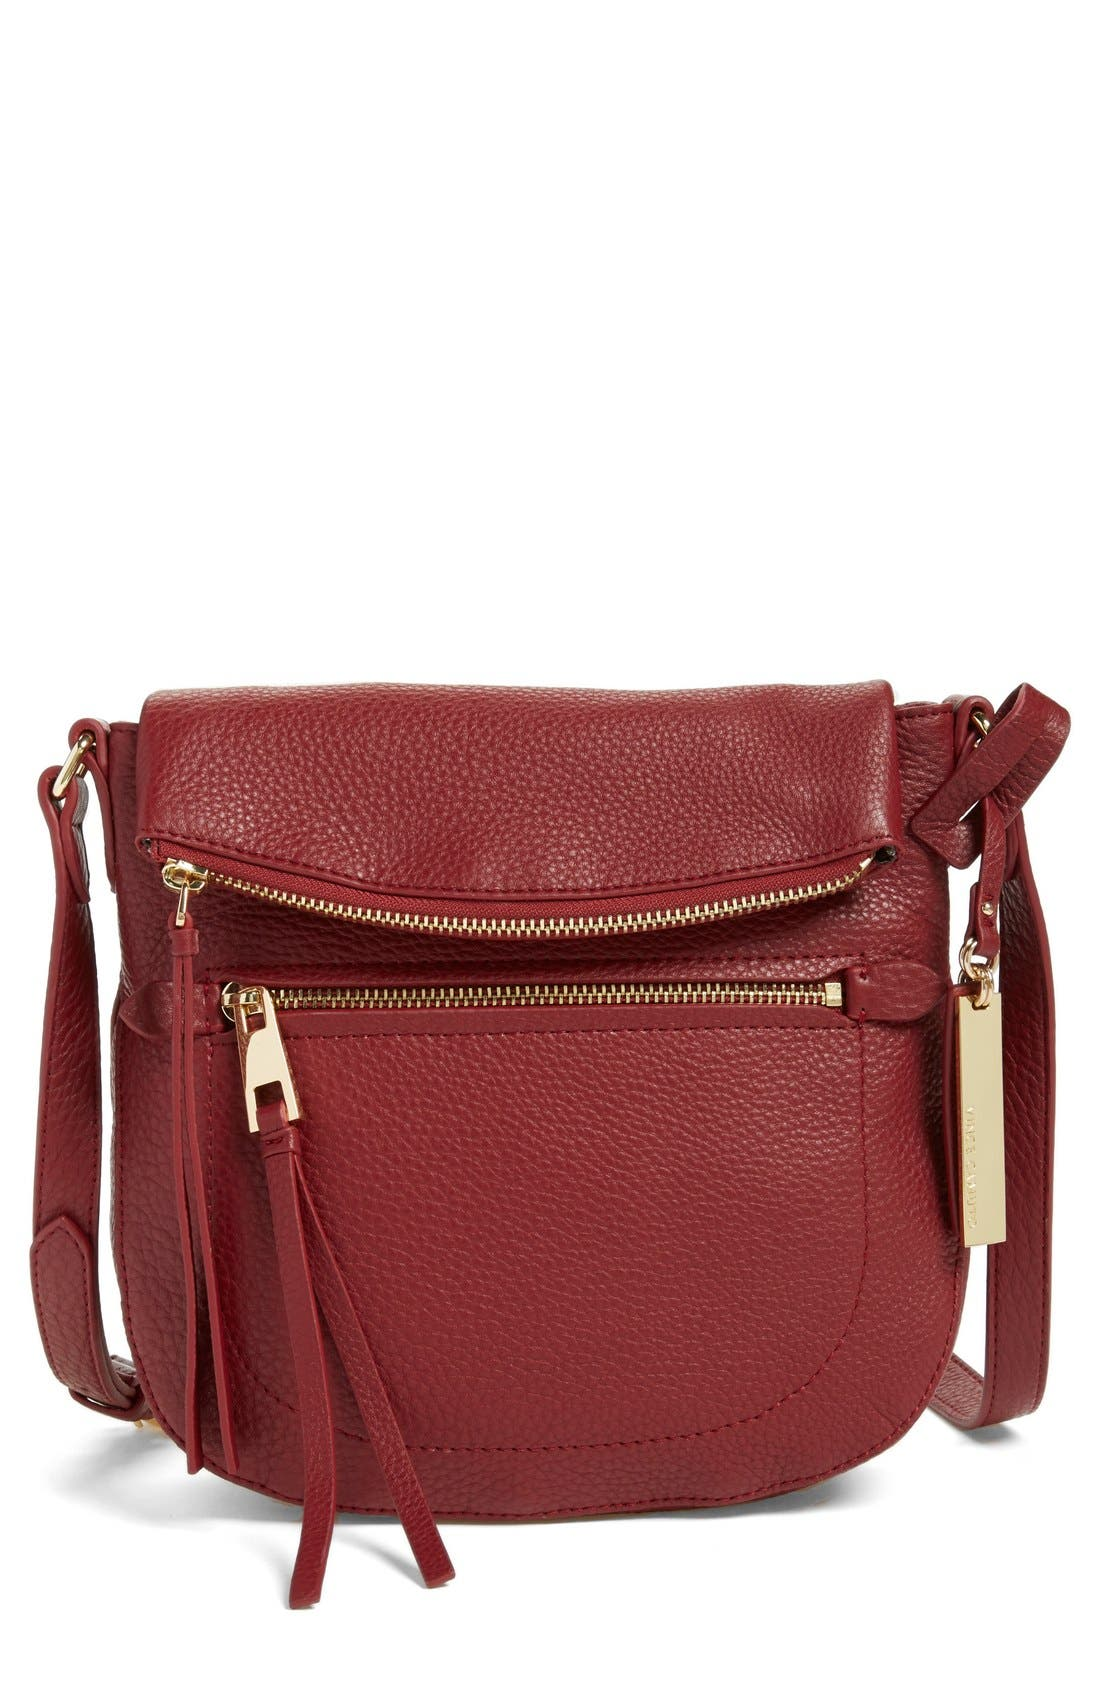 'Tala' Leather Crossbody Bag,                             Main thumbnail 6, color,